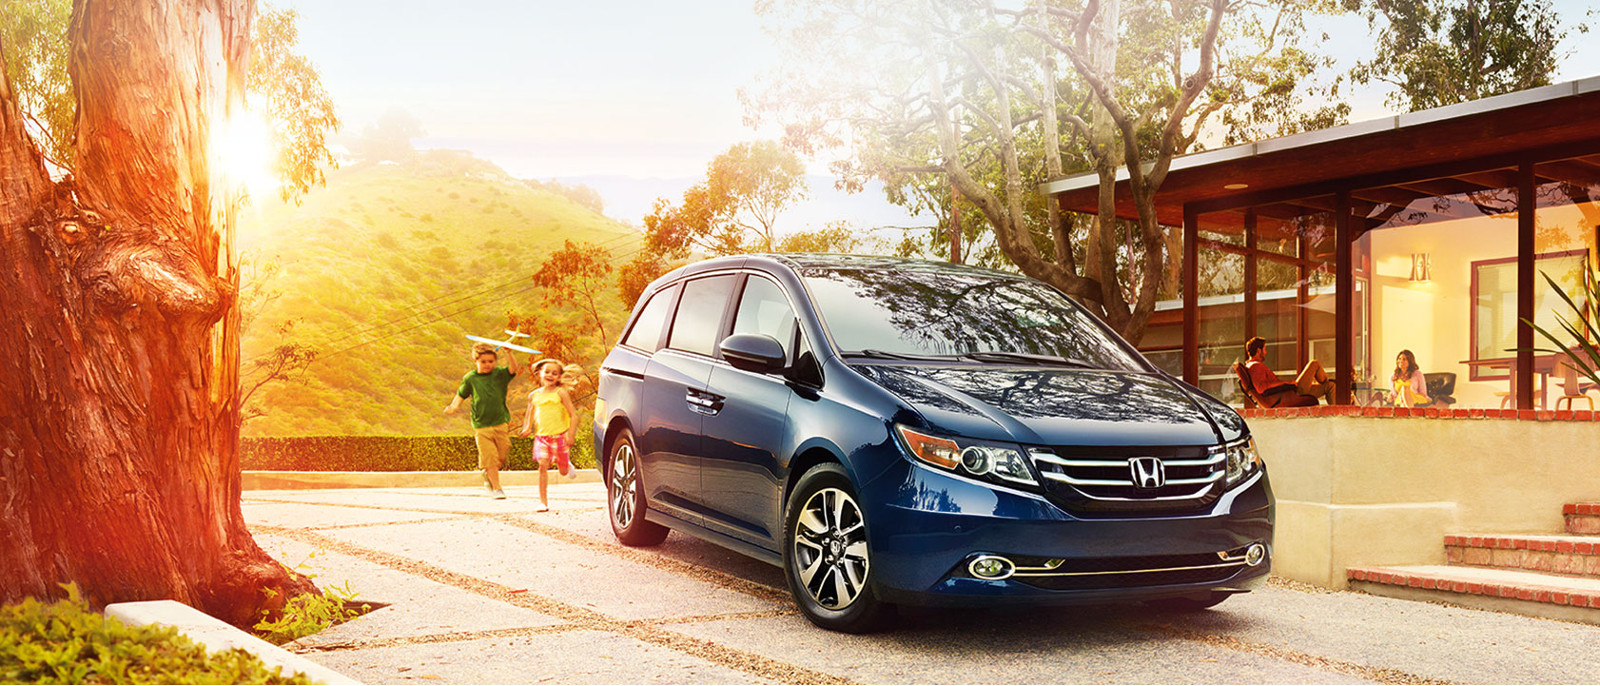 Tamaroff Honda Service Center >> Find Your New Minivan Among the Five Honda Odyssey Trim Levels